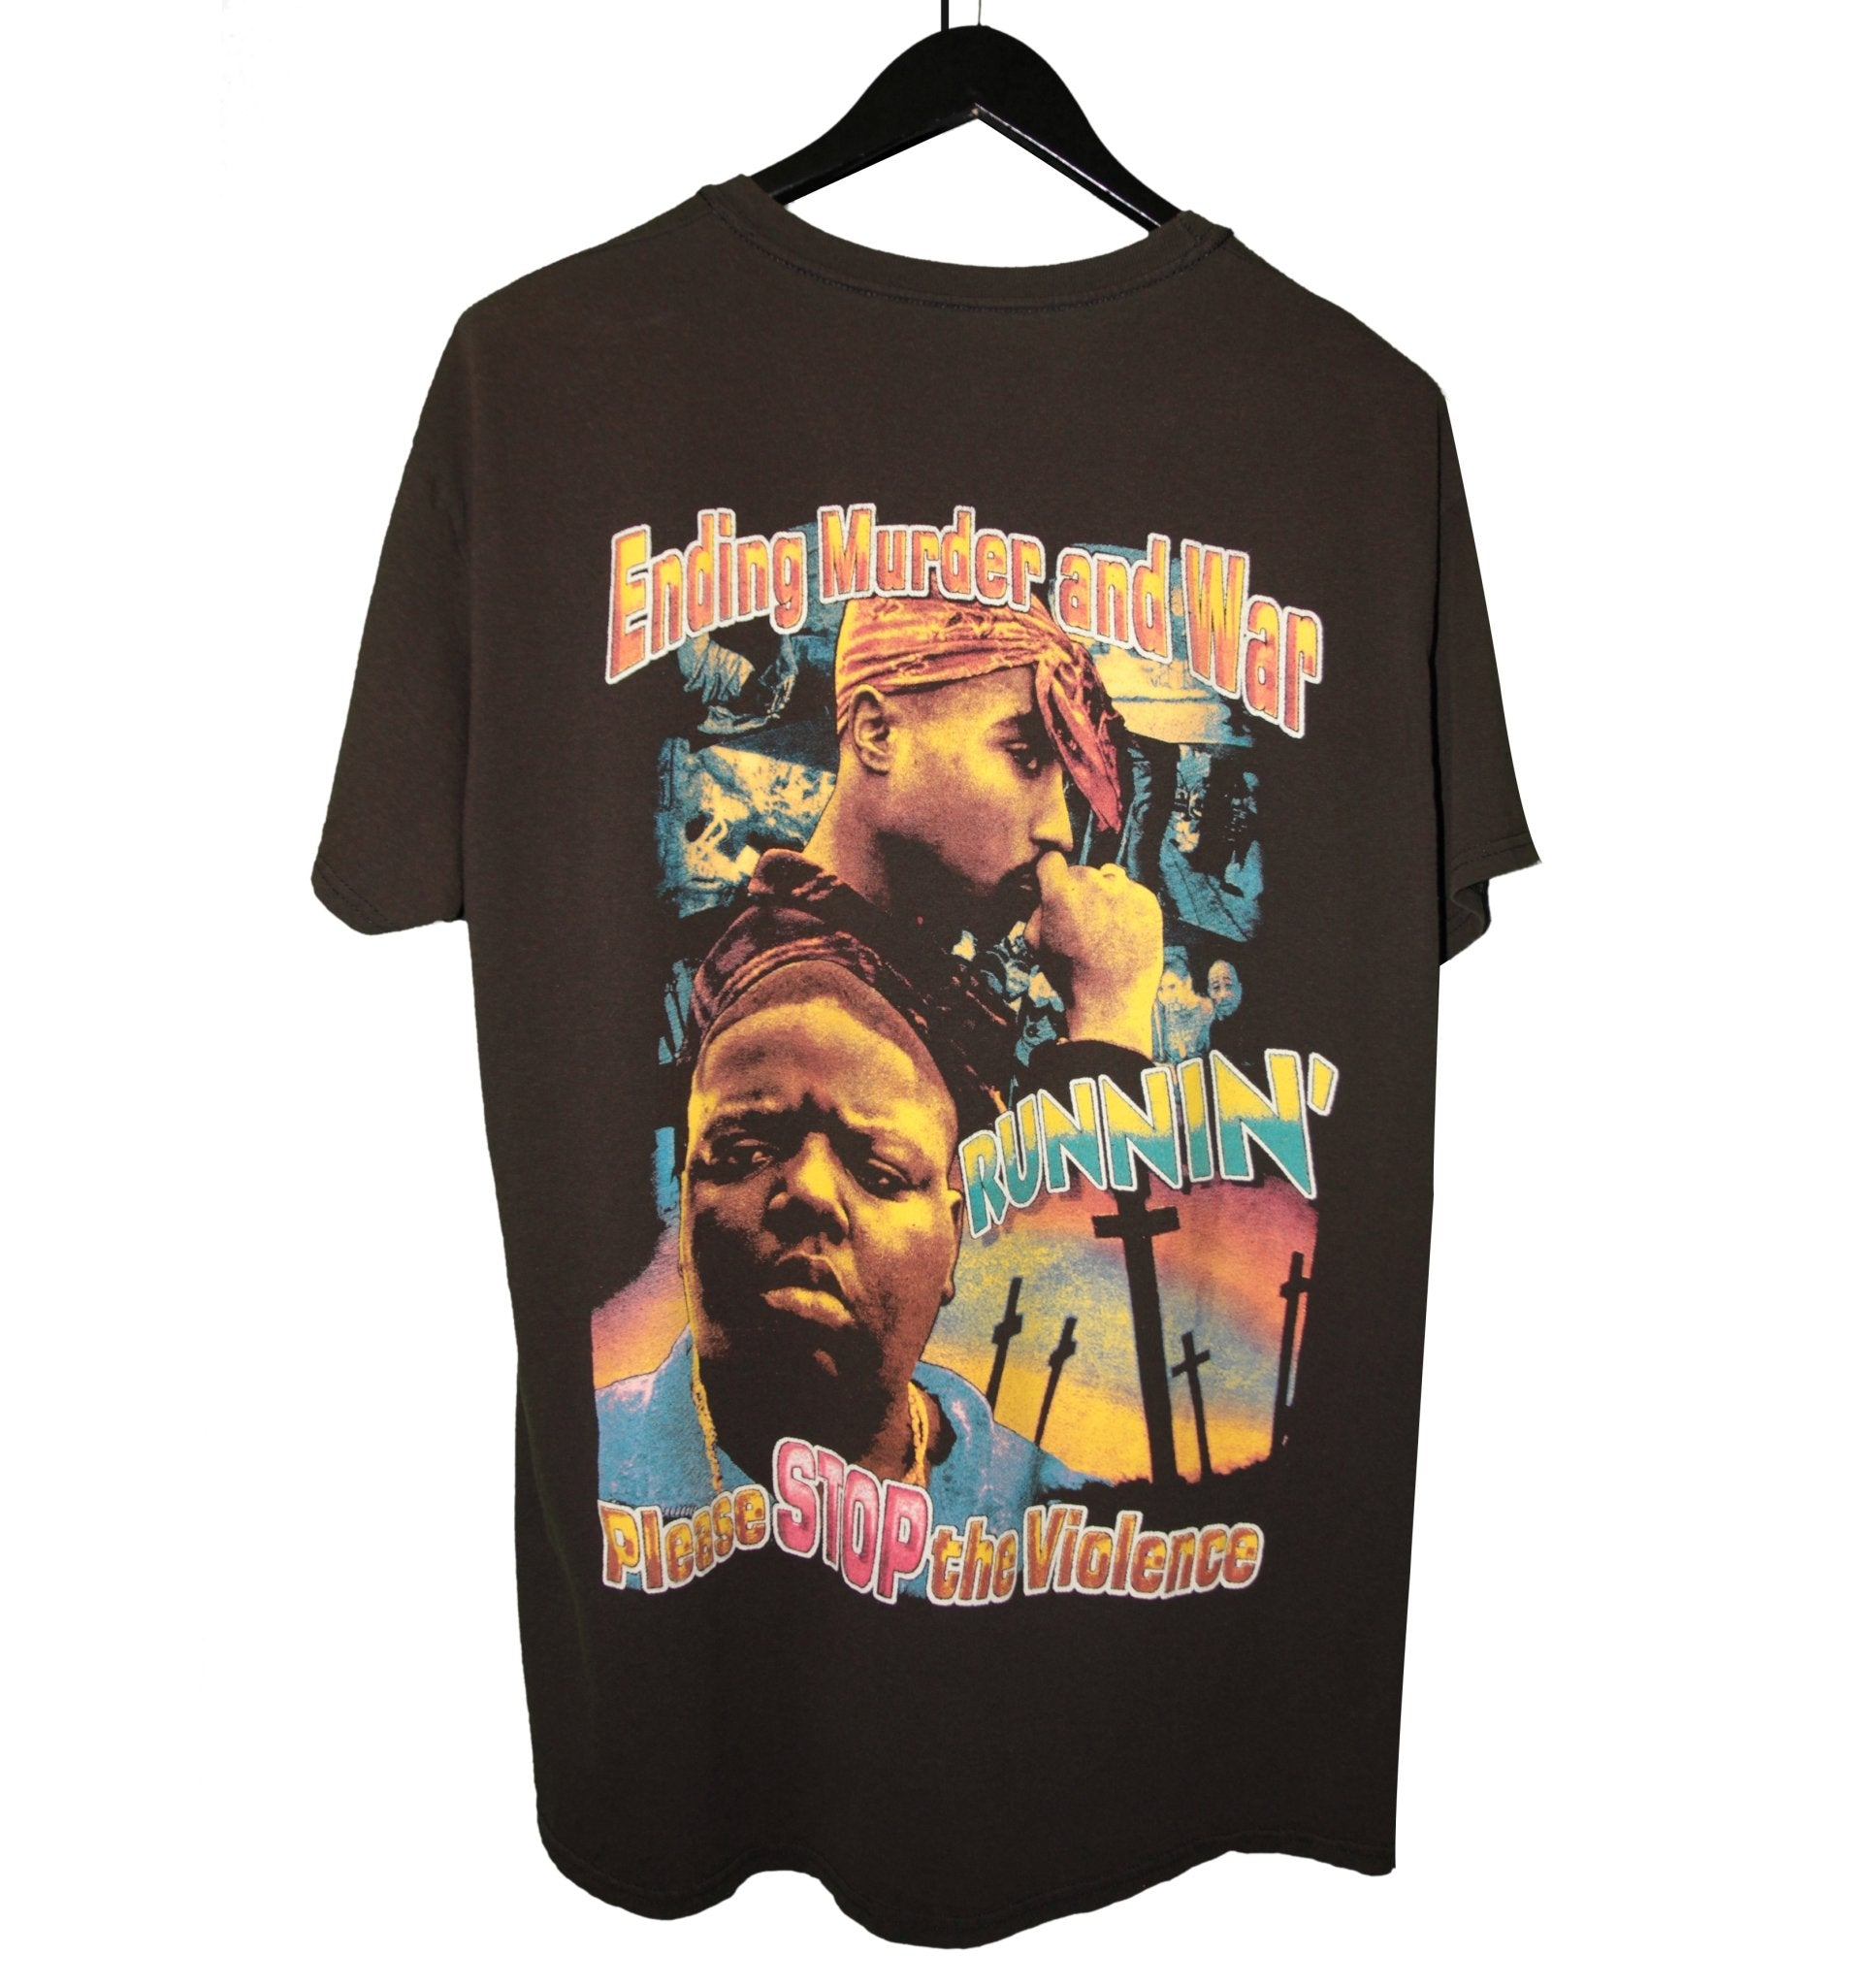 Tupac & Biggie 00s Stop the Violence Rap Shirt - Faded AU